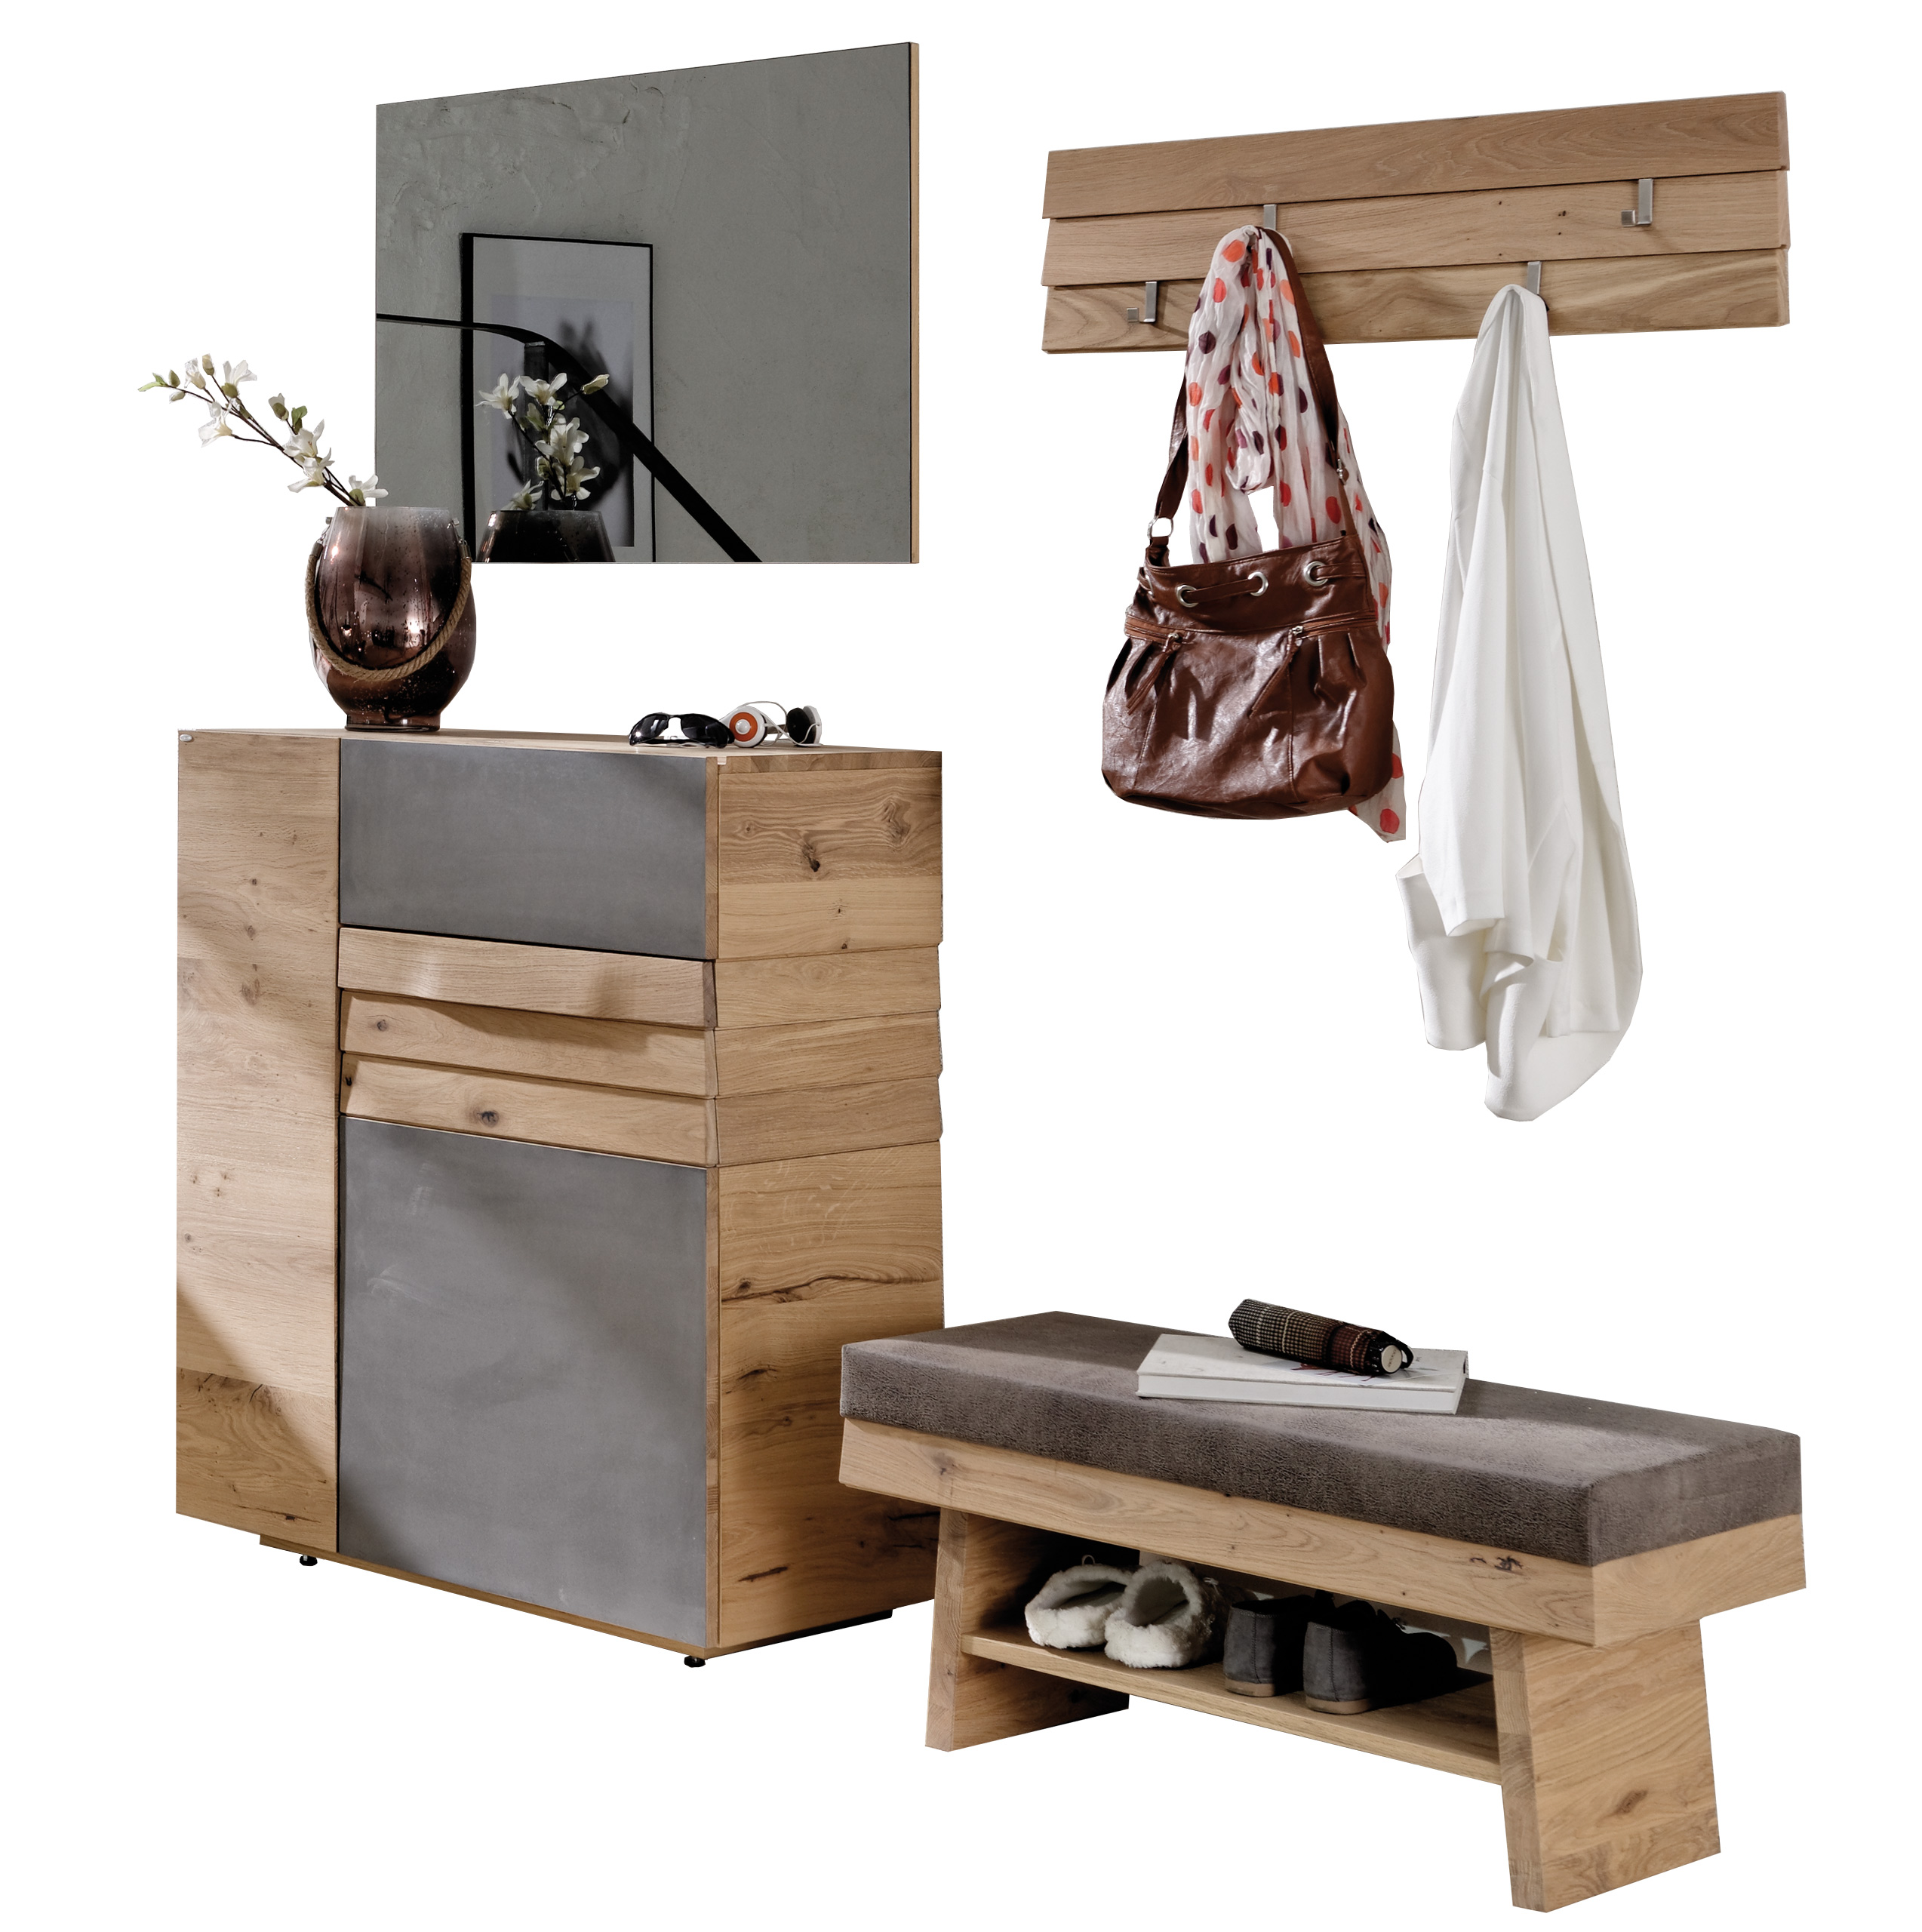 voglauer garderobe v organo wildeiche eisen m bel letz ihr online shop. Black Bedroom Furniture Sets. Home Design Ideas